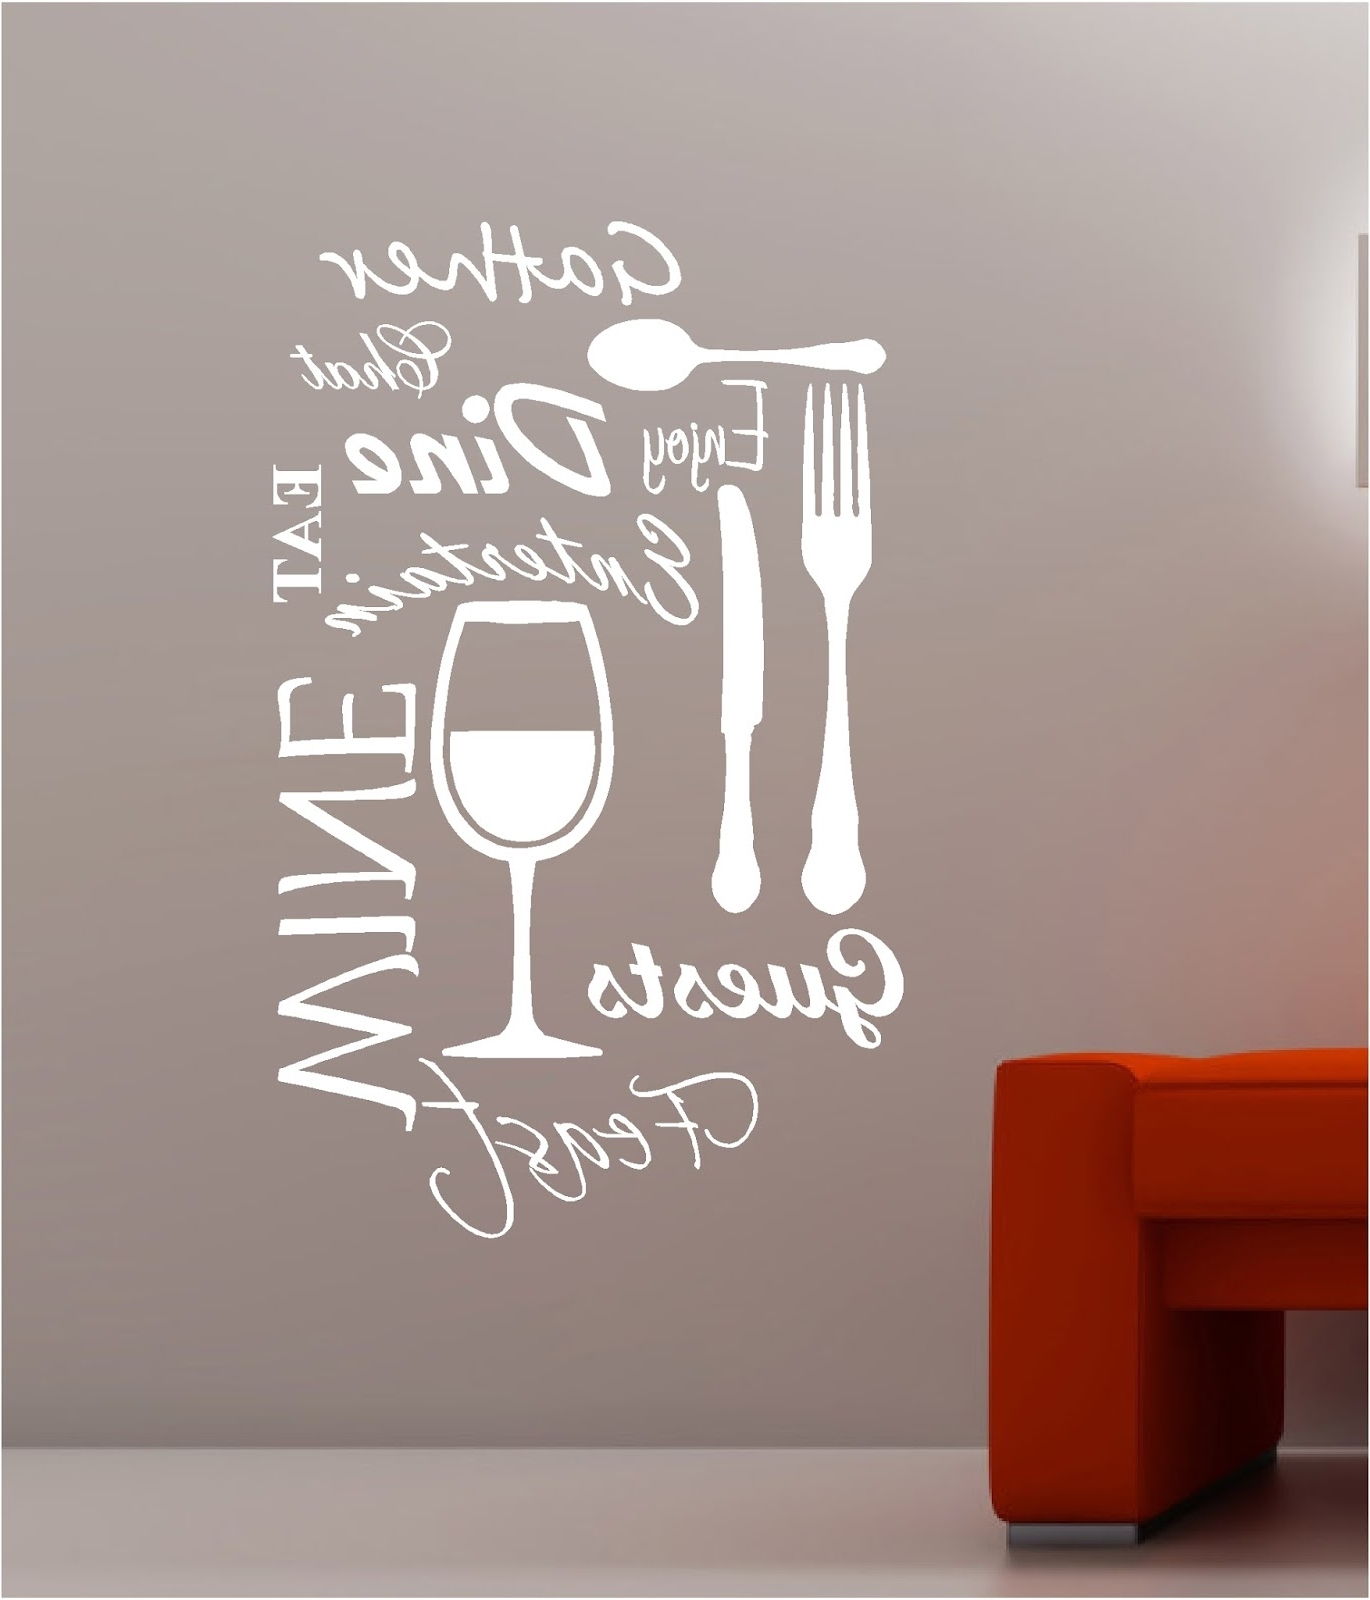 Wall Art Designs: Kitchen Wall Art Home Design Ideas Wall Decor With Regard To 2018 Art For Kitchen Walls (View 15 of 15)